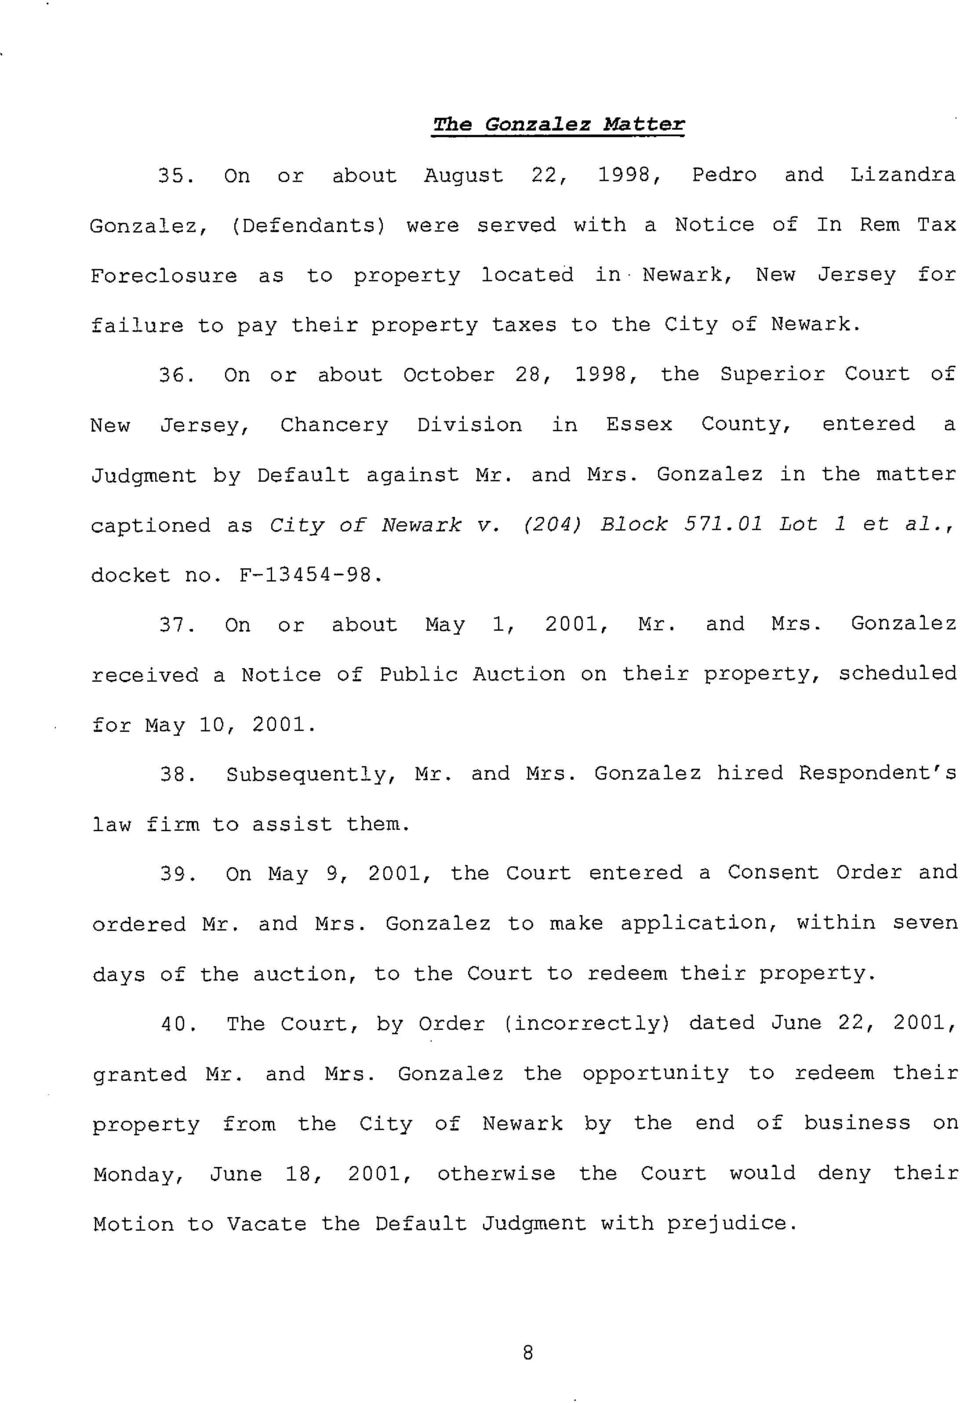 property taxes to the City of Newark. 36. On or about October 28, 1998, the Superior Court of New Jersey, Chancery Division in Essex County, entered a Judgment by Default against Mr. and Mrs.